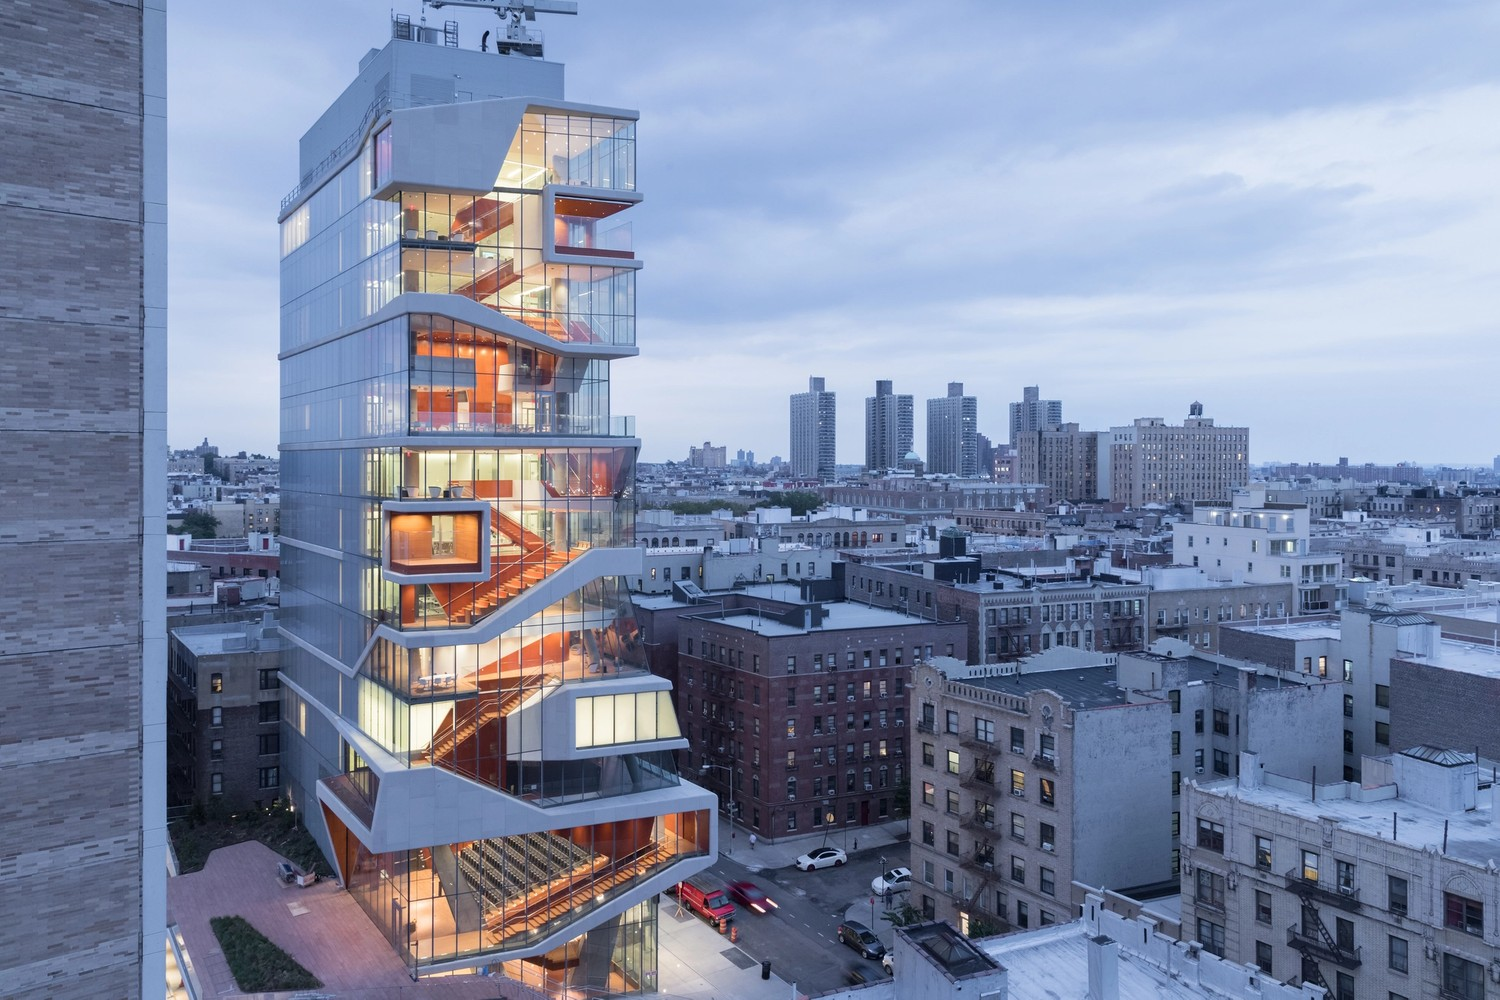 Here You Can Find 10 Outstanding Architecture Projects of Diller Scofidio + Renfro To Look For This Year! architecture projects Here You Can Find 10 Outstanding Architecture Projects of Diller Scofidio + Renfro To Look For This Year! 9 2